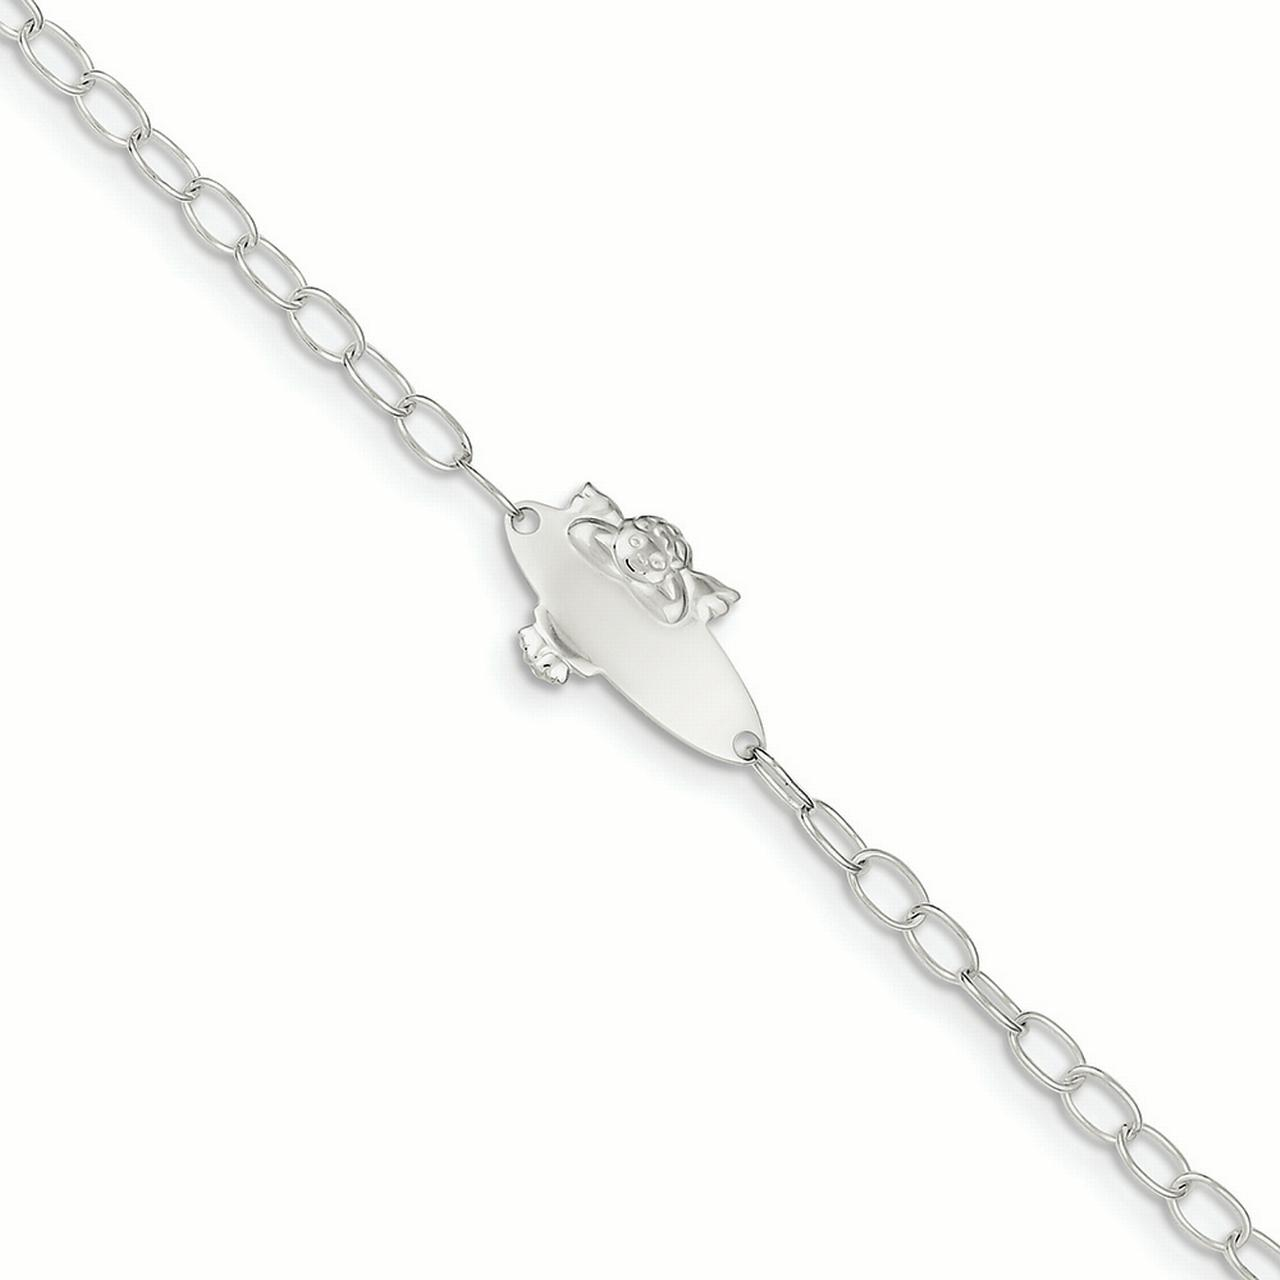 .925 Sterling Silver Children's Angel Baby Engraveable ID Bracelet 6.00 Inches